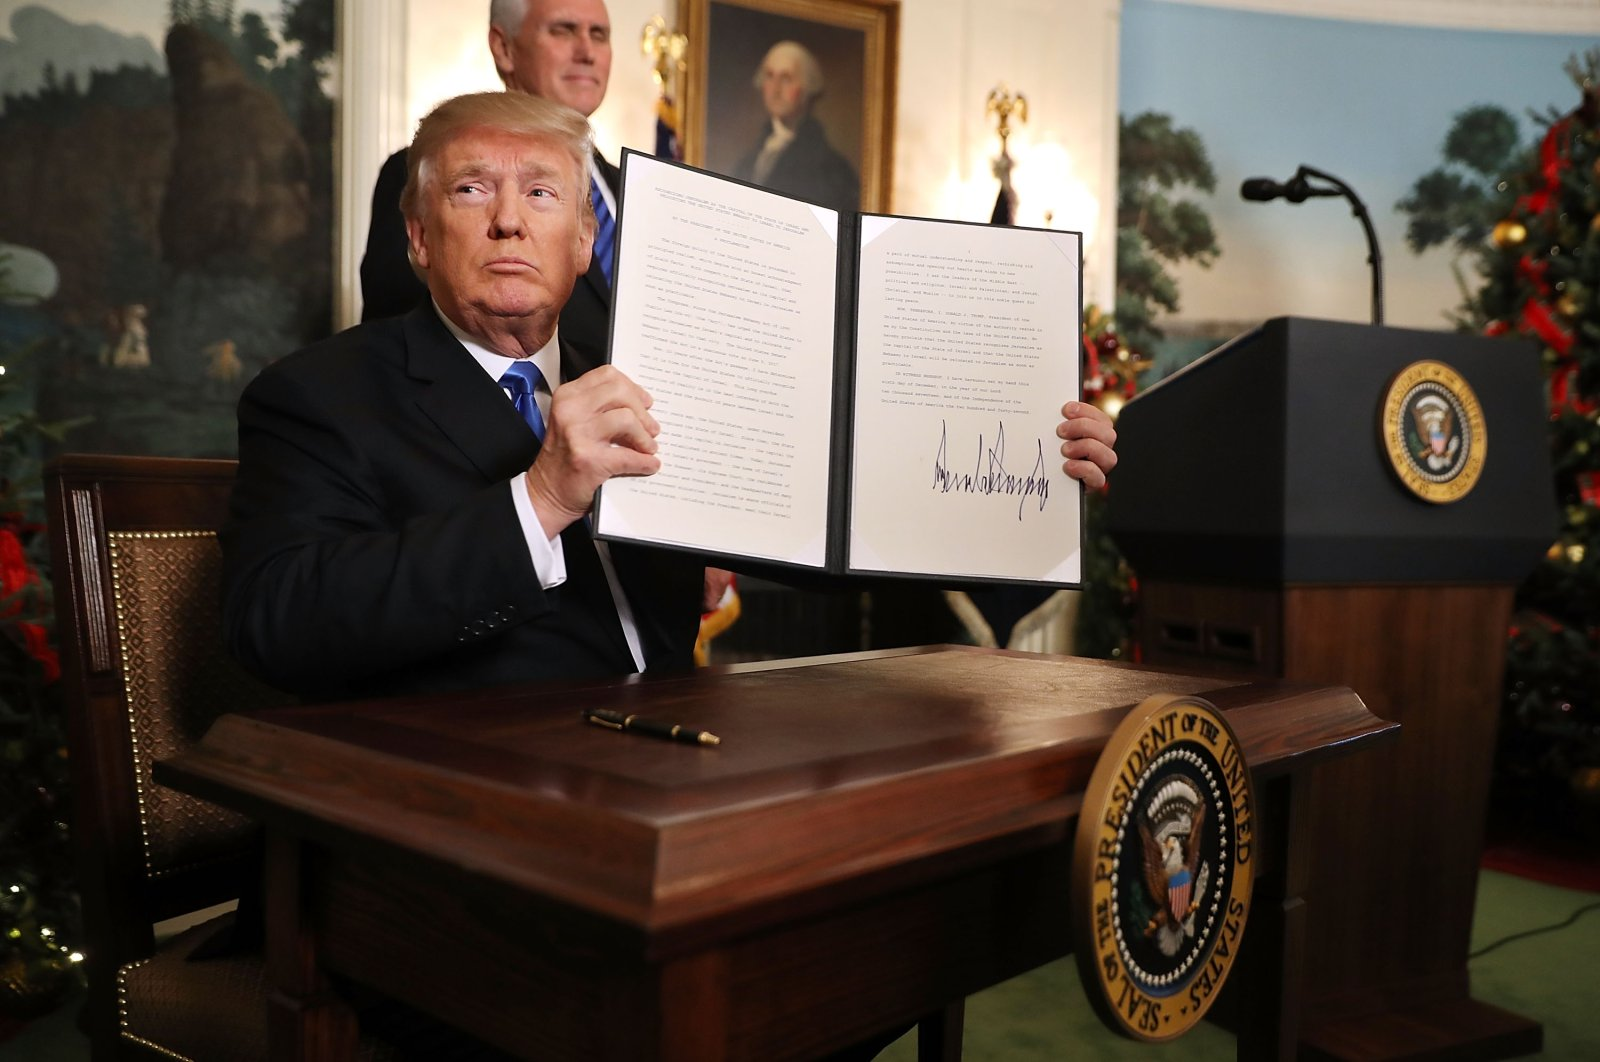 U.S. President Donald Trump holds up a controversial proclamation that the U.S. will formally recognize Jerusalem as the capital of Israel after signing the document at the White House, Washington, D.C., Dec. 6, 2017. (Photo by Getty Images)